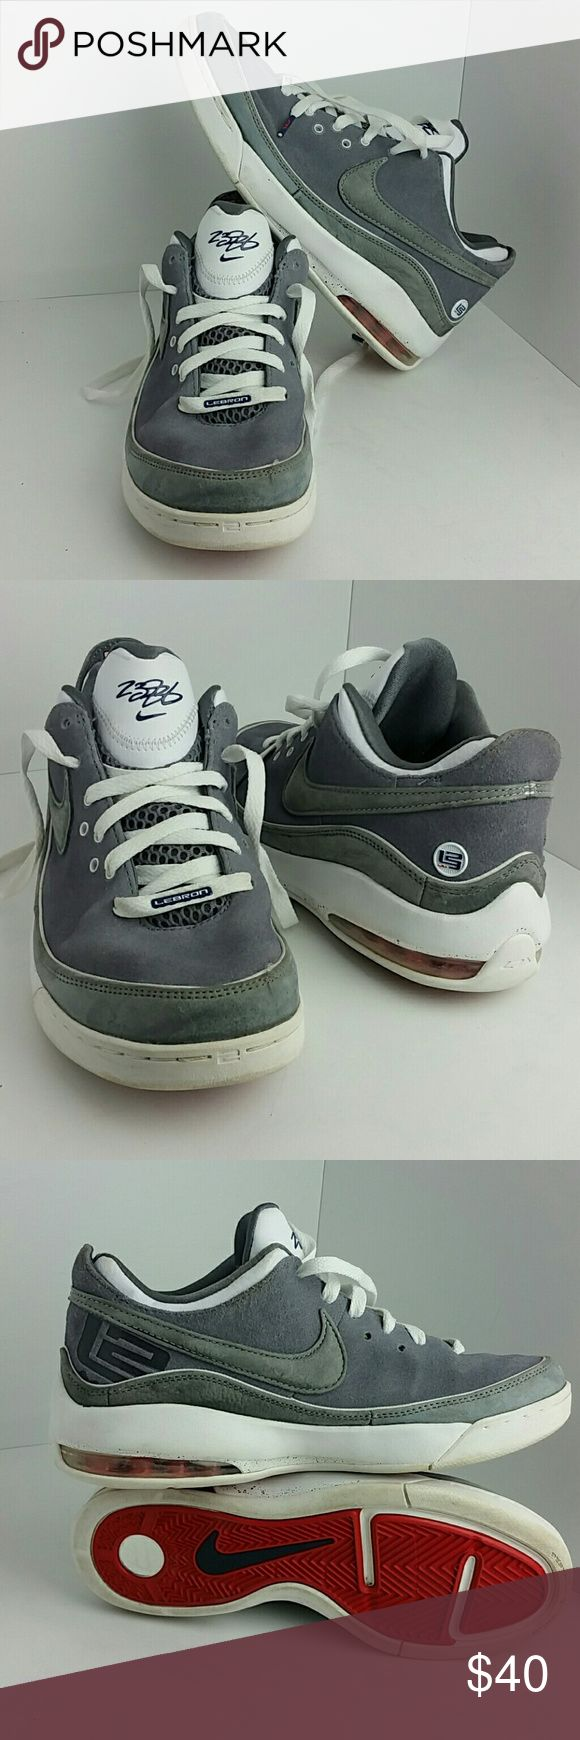 NIKE AIR MAX LEBRON 7 VII LOW MEN'S SHOES IN GOOD CONDITION   SKE # SZ NIKE  Shoes Athletic Shoes